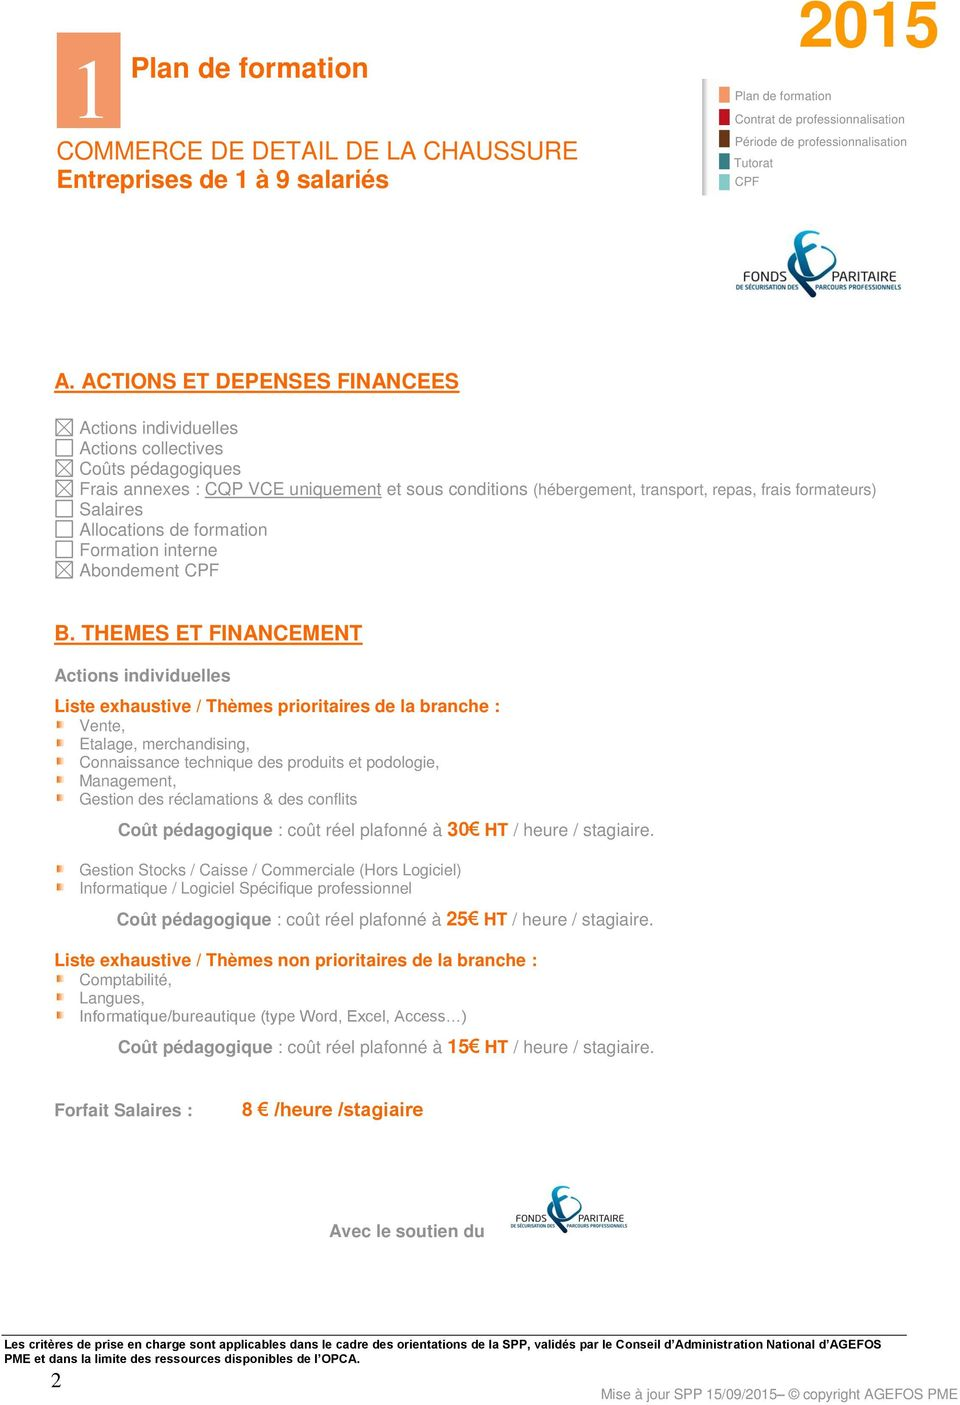 Salaires Allocations de formation Formation interne Abondement CPF B.